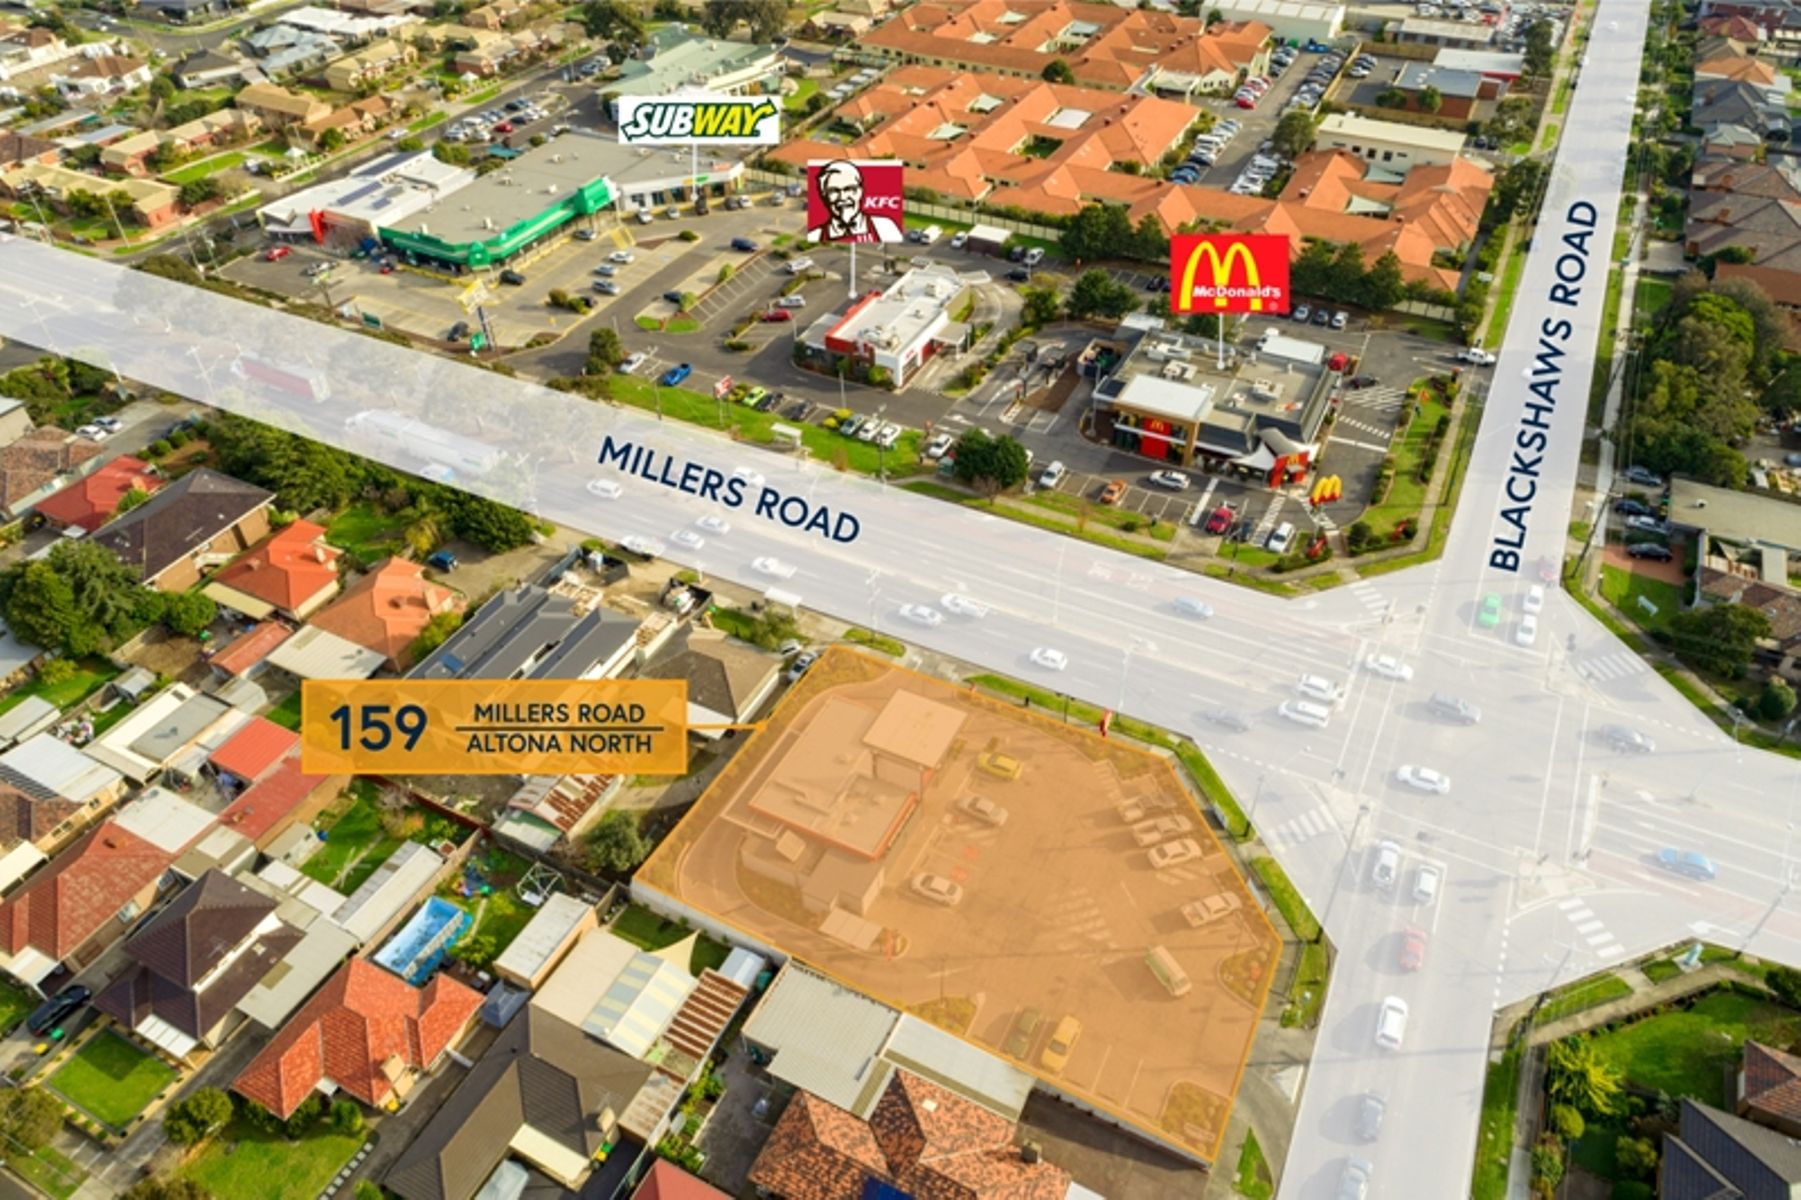 TES20339 581 Millers Rd Altona North   Overlay2 PROOF 2